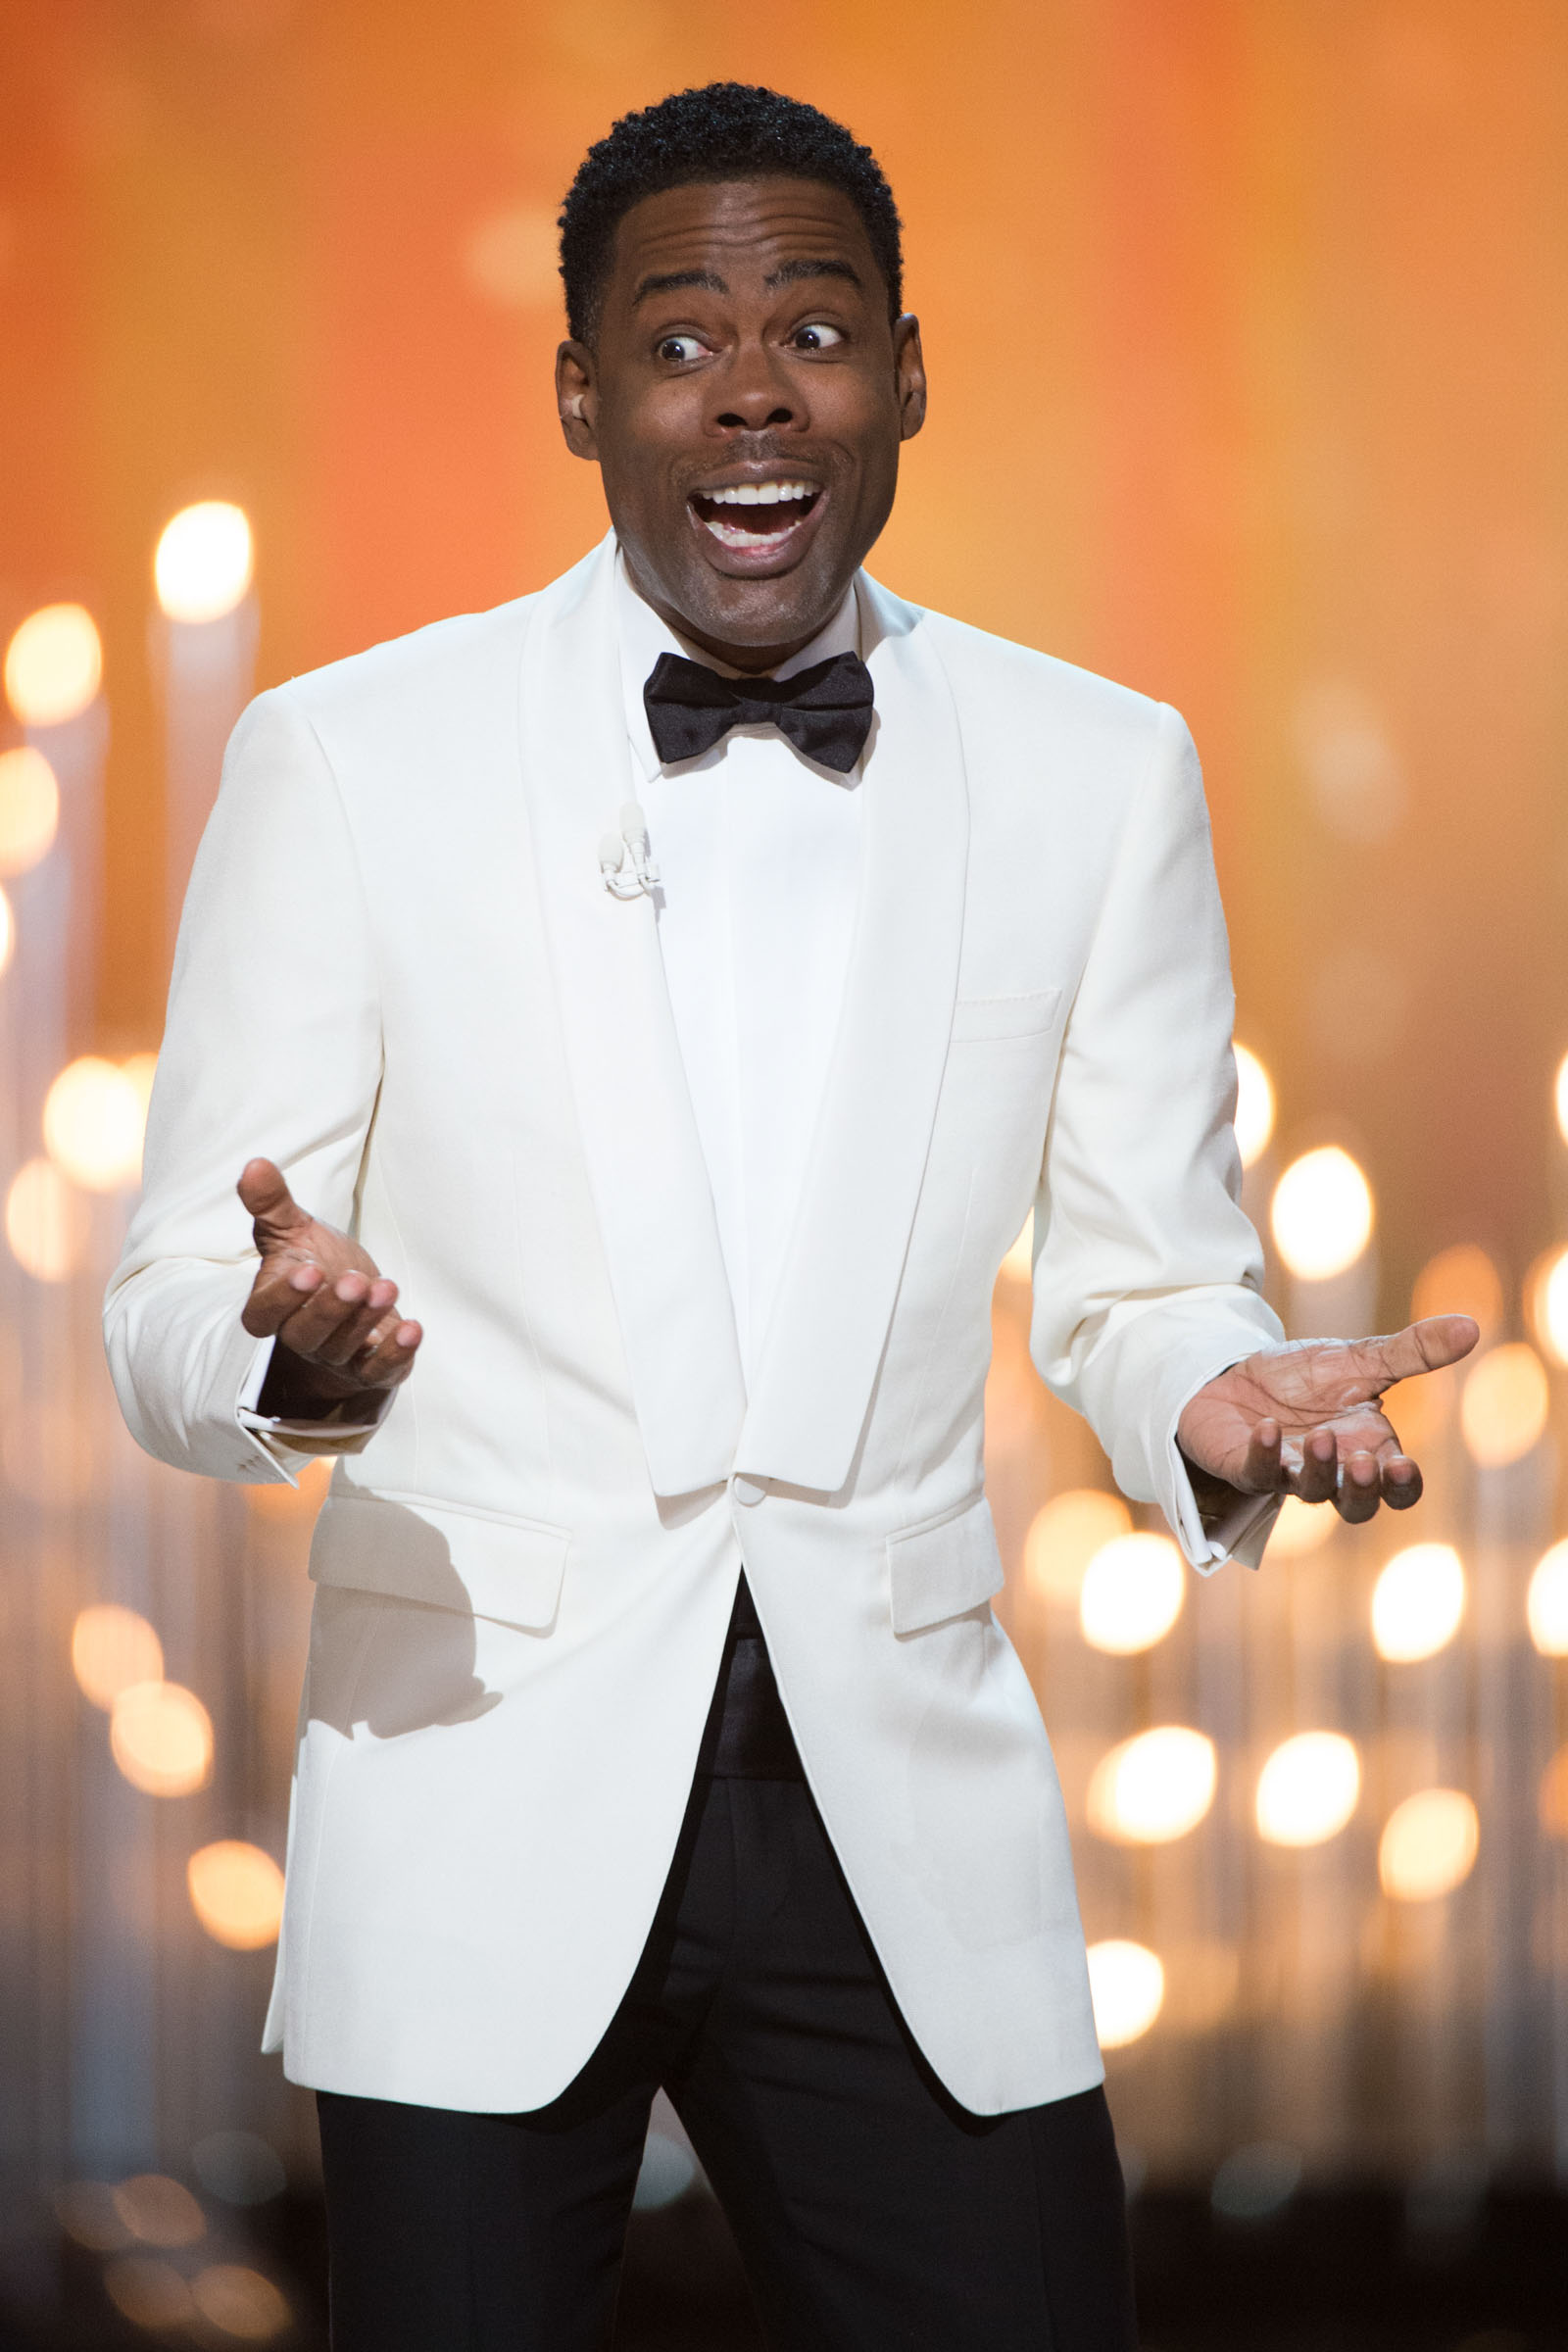 Chris Rock hosts The 88th Oscars® at the Dolby® Theatre in Hollywood, CA on Sunday, February 28, 2016. Photo Credit: Aaron Poole / ©A.M.P.A.S.